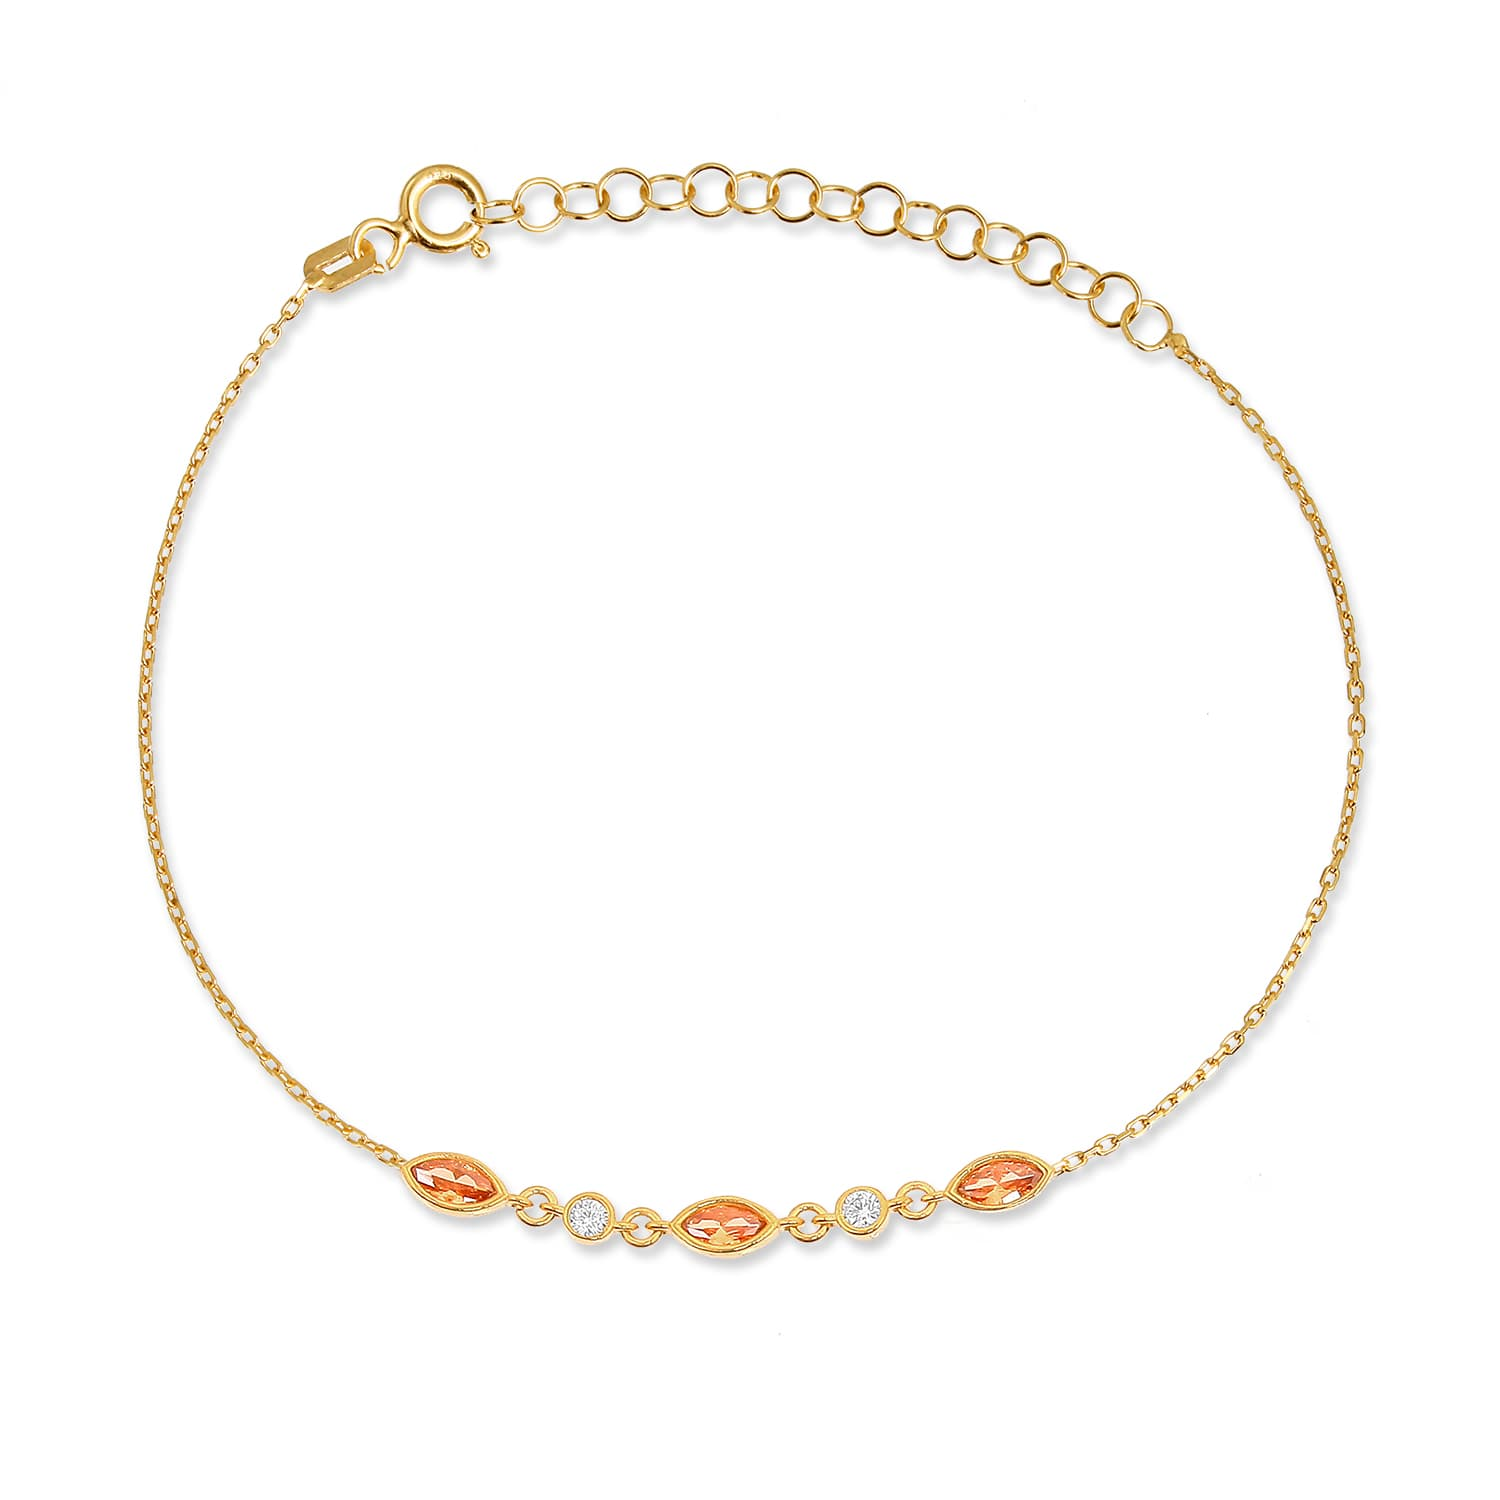 Gold plated bracelet models